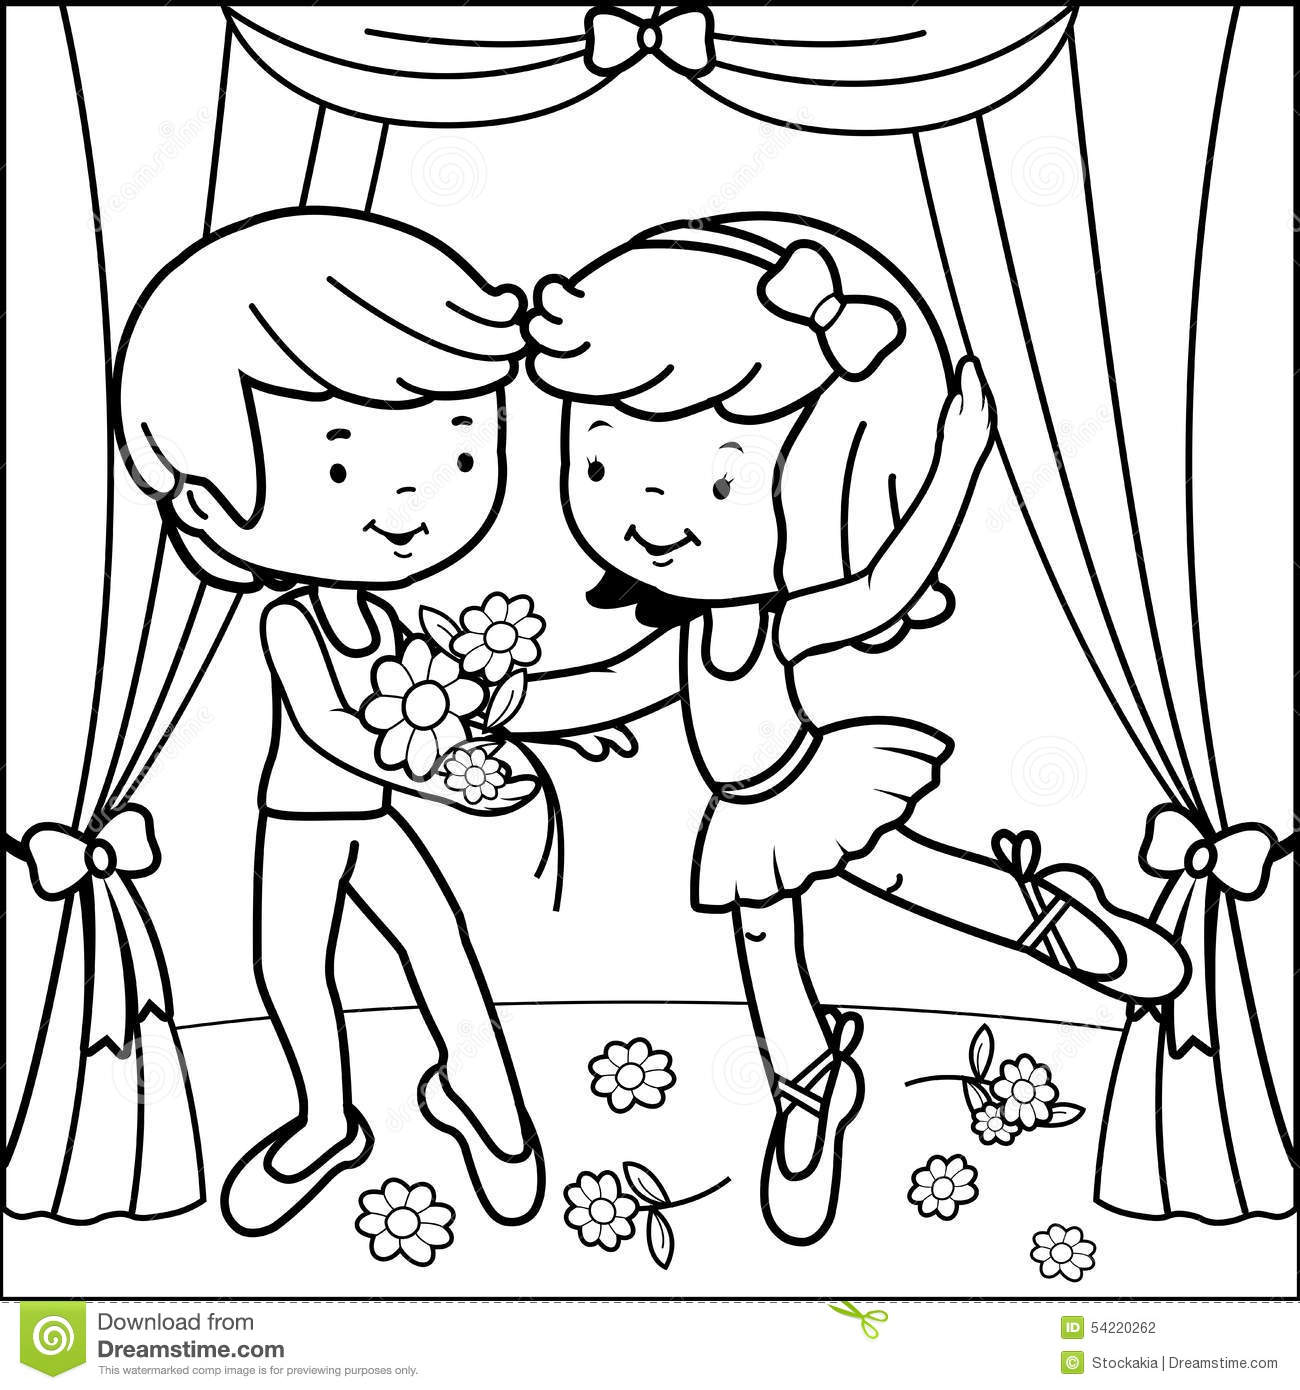 Coloring Page Ballet Dancers Stock Vector - Illustration of ...